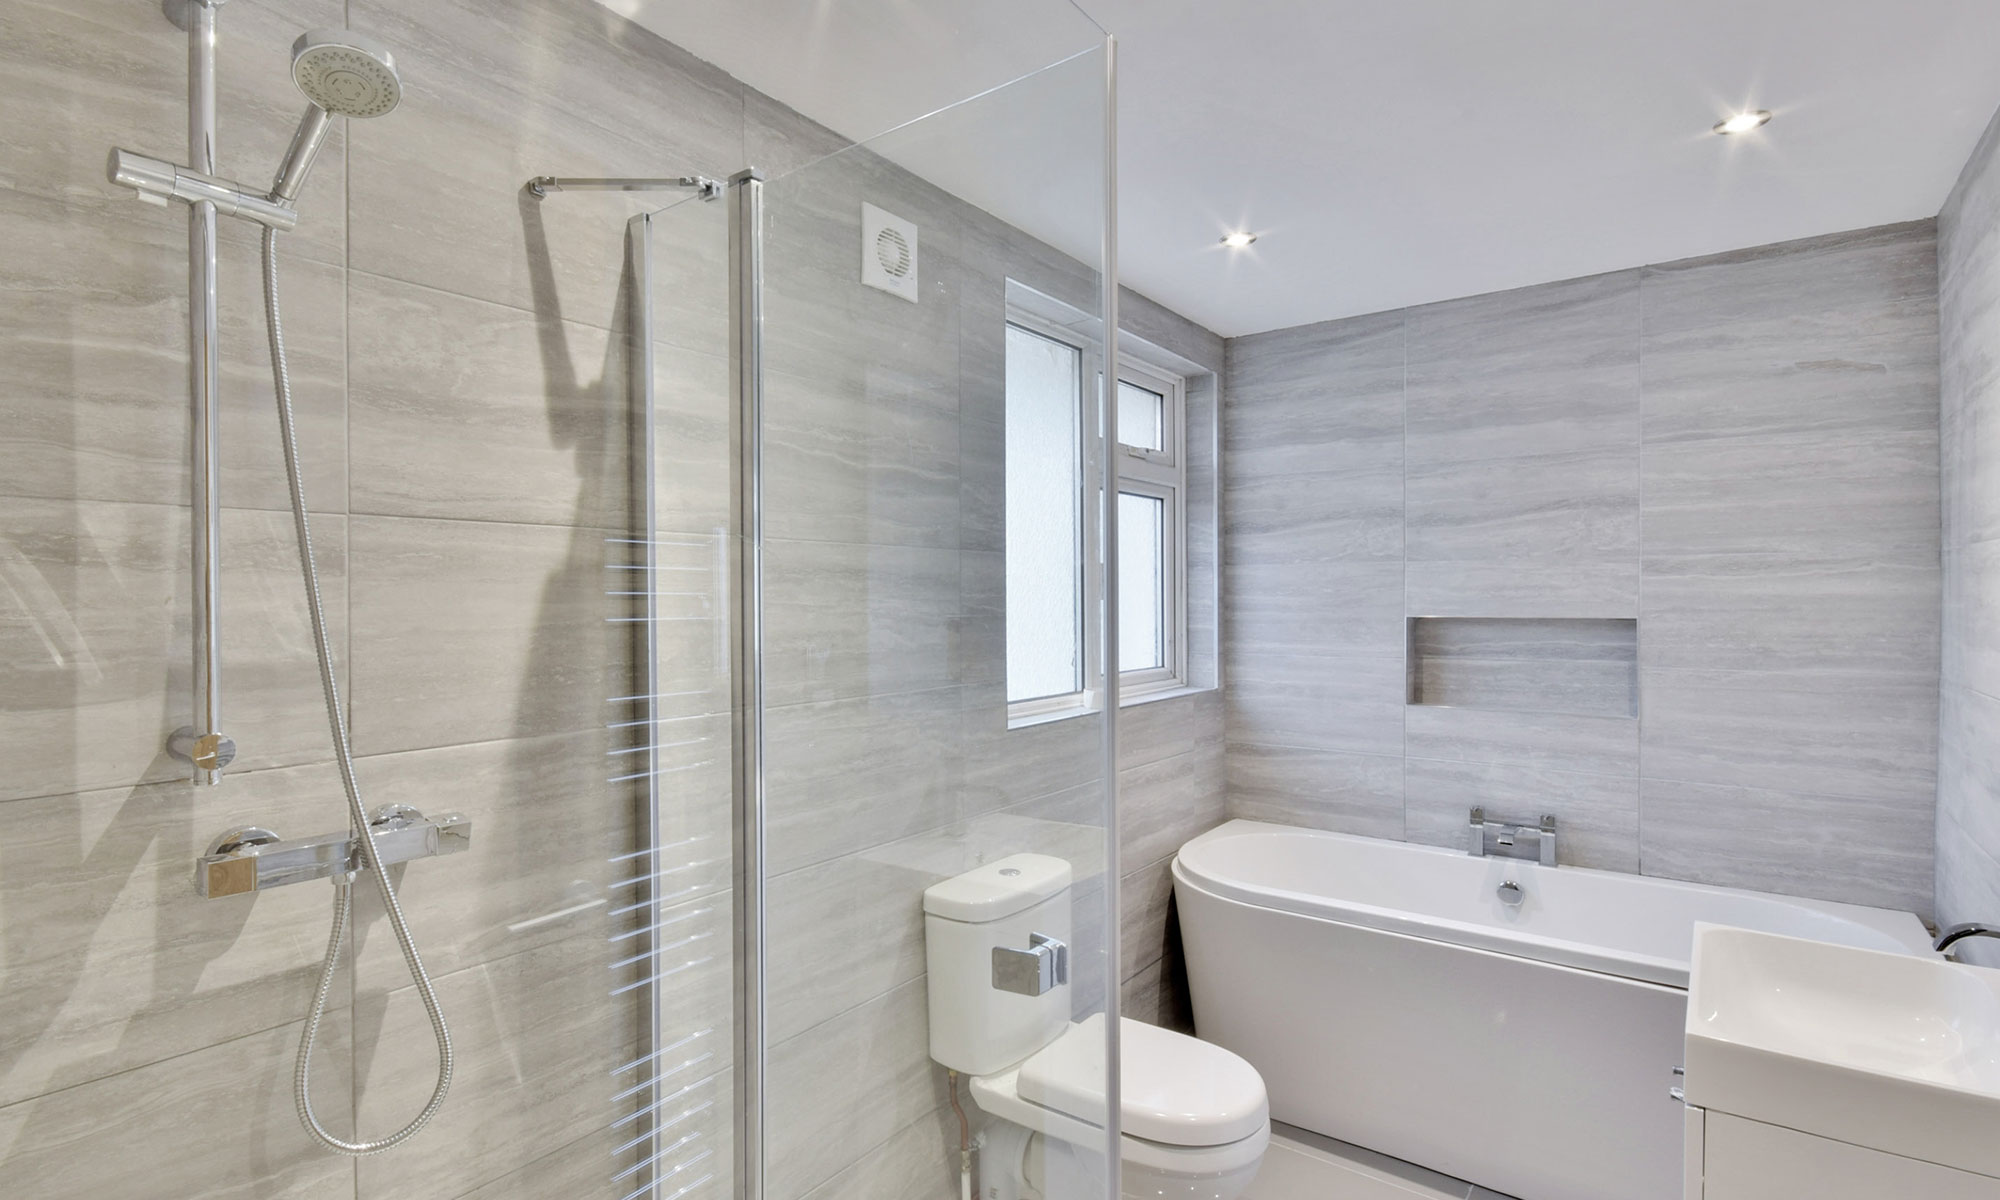 OAKWOOD BUNGALOW EXTENSION BATHROOM